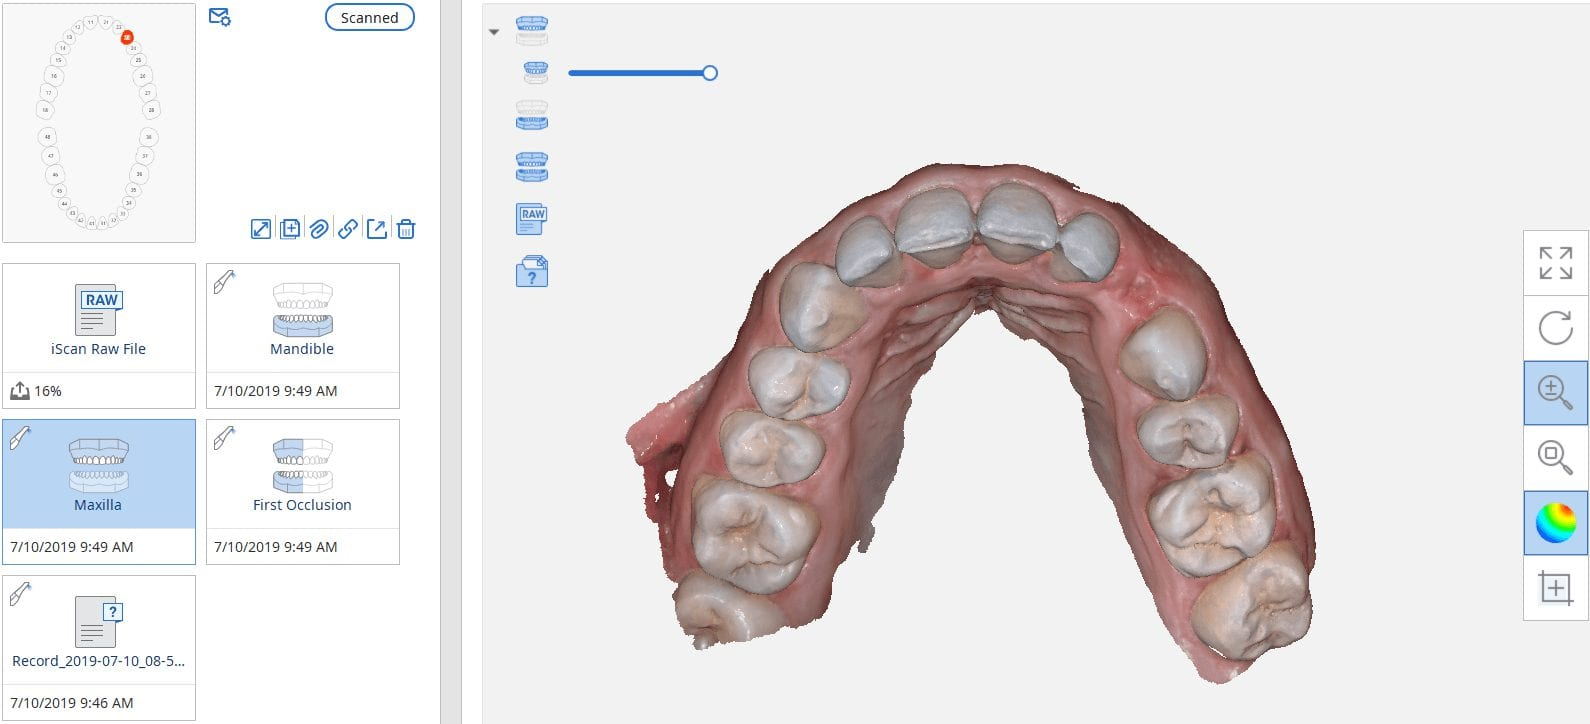 medit i500 used for implant planning in blueskybio software